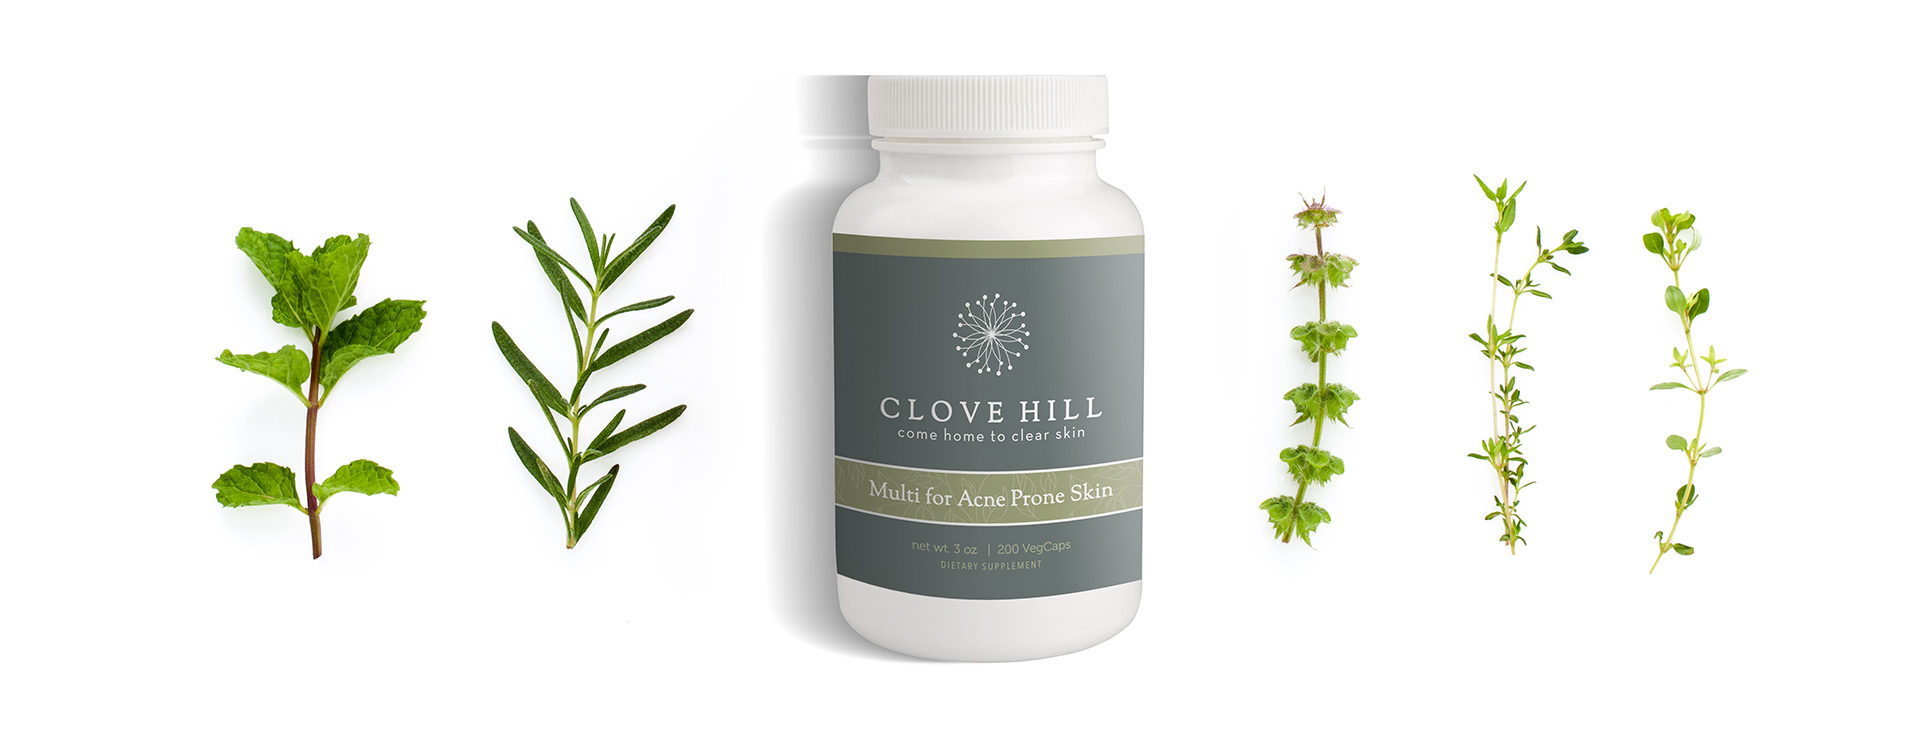 innovative packaging design for clove hill